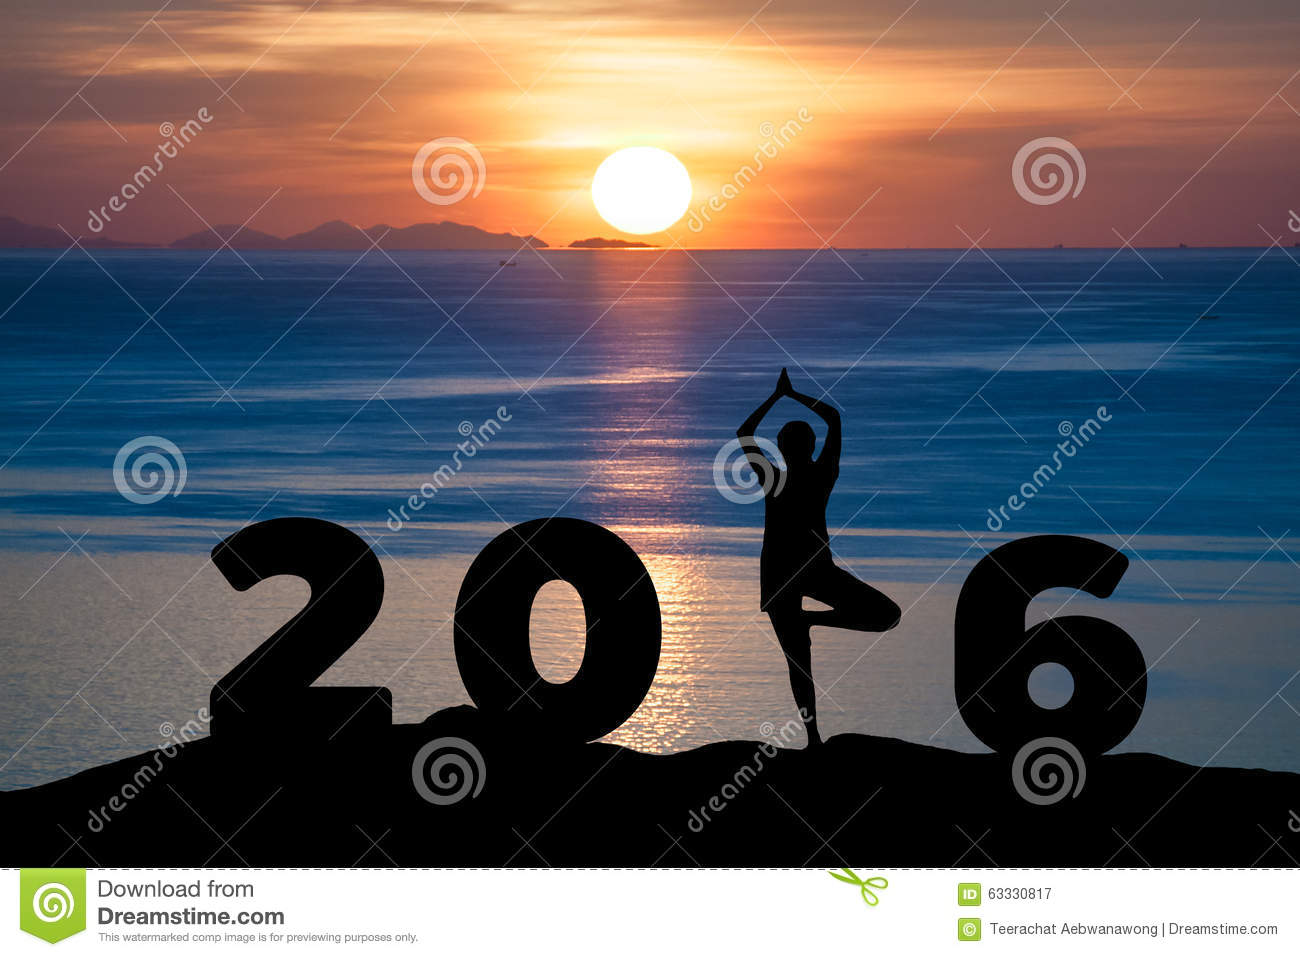 Silhouette young woman play Yoga on the sea and 2016 years while celebrating new year